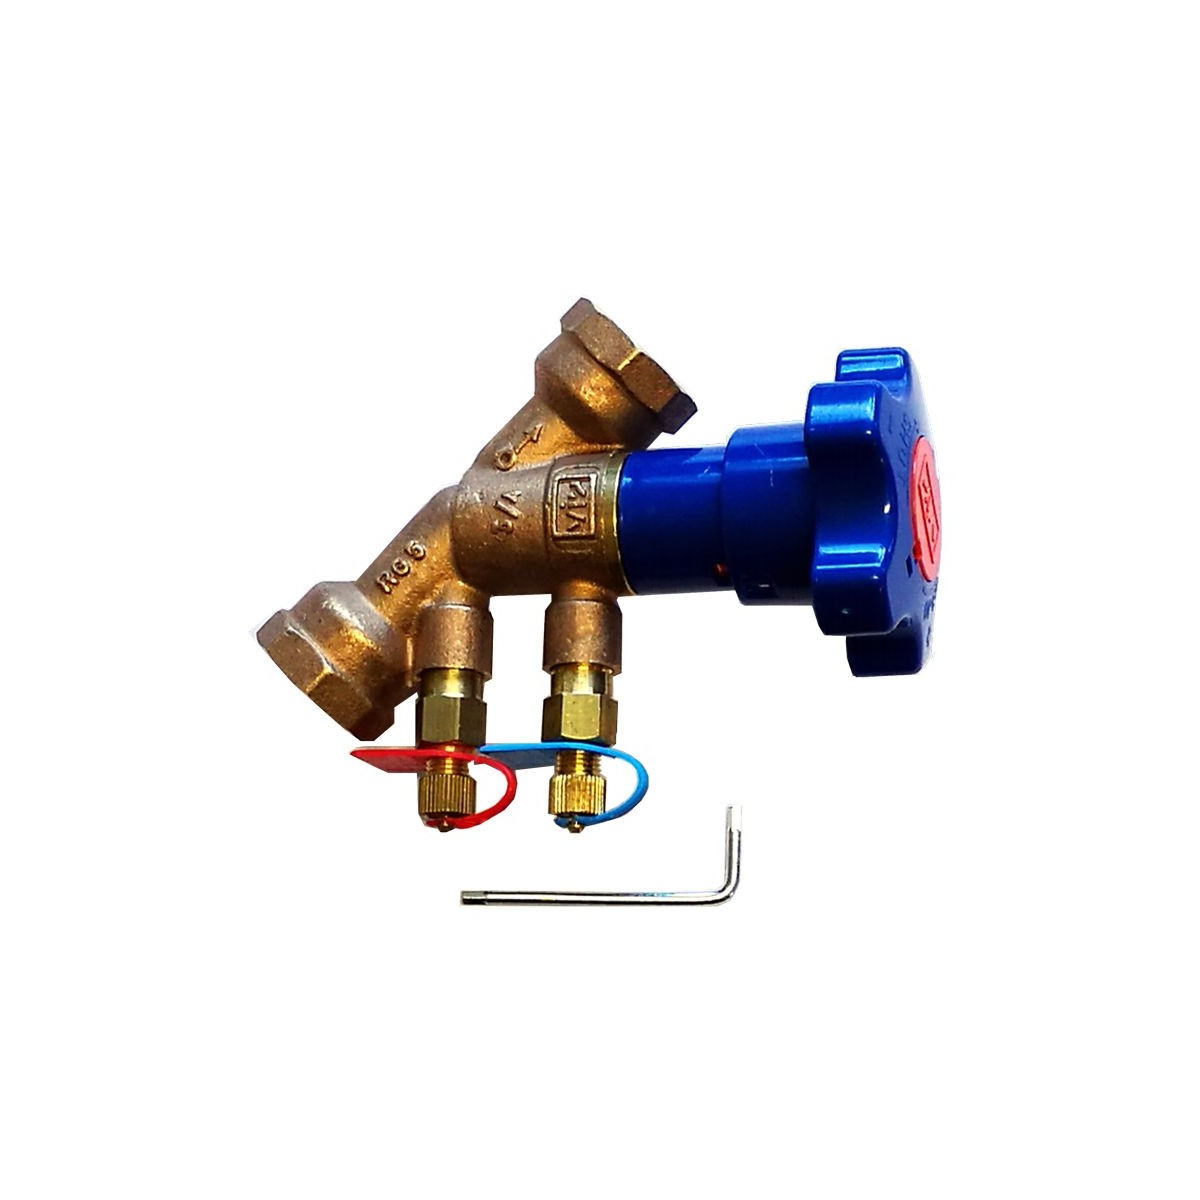 Double regulating and commissioning valve DN20 PN25 kv 4.3